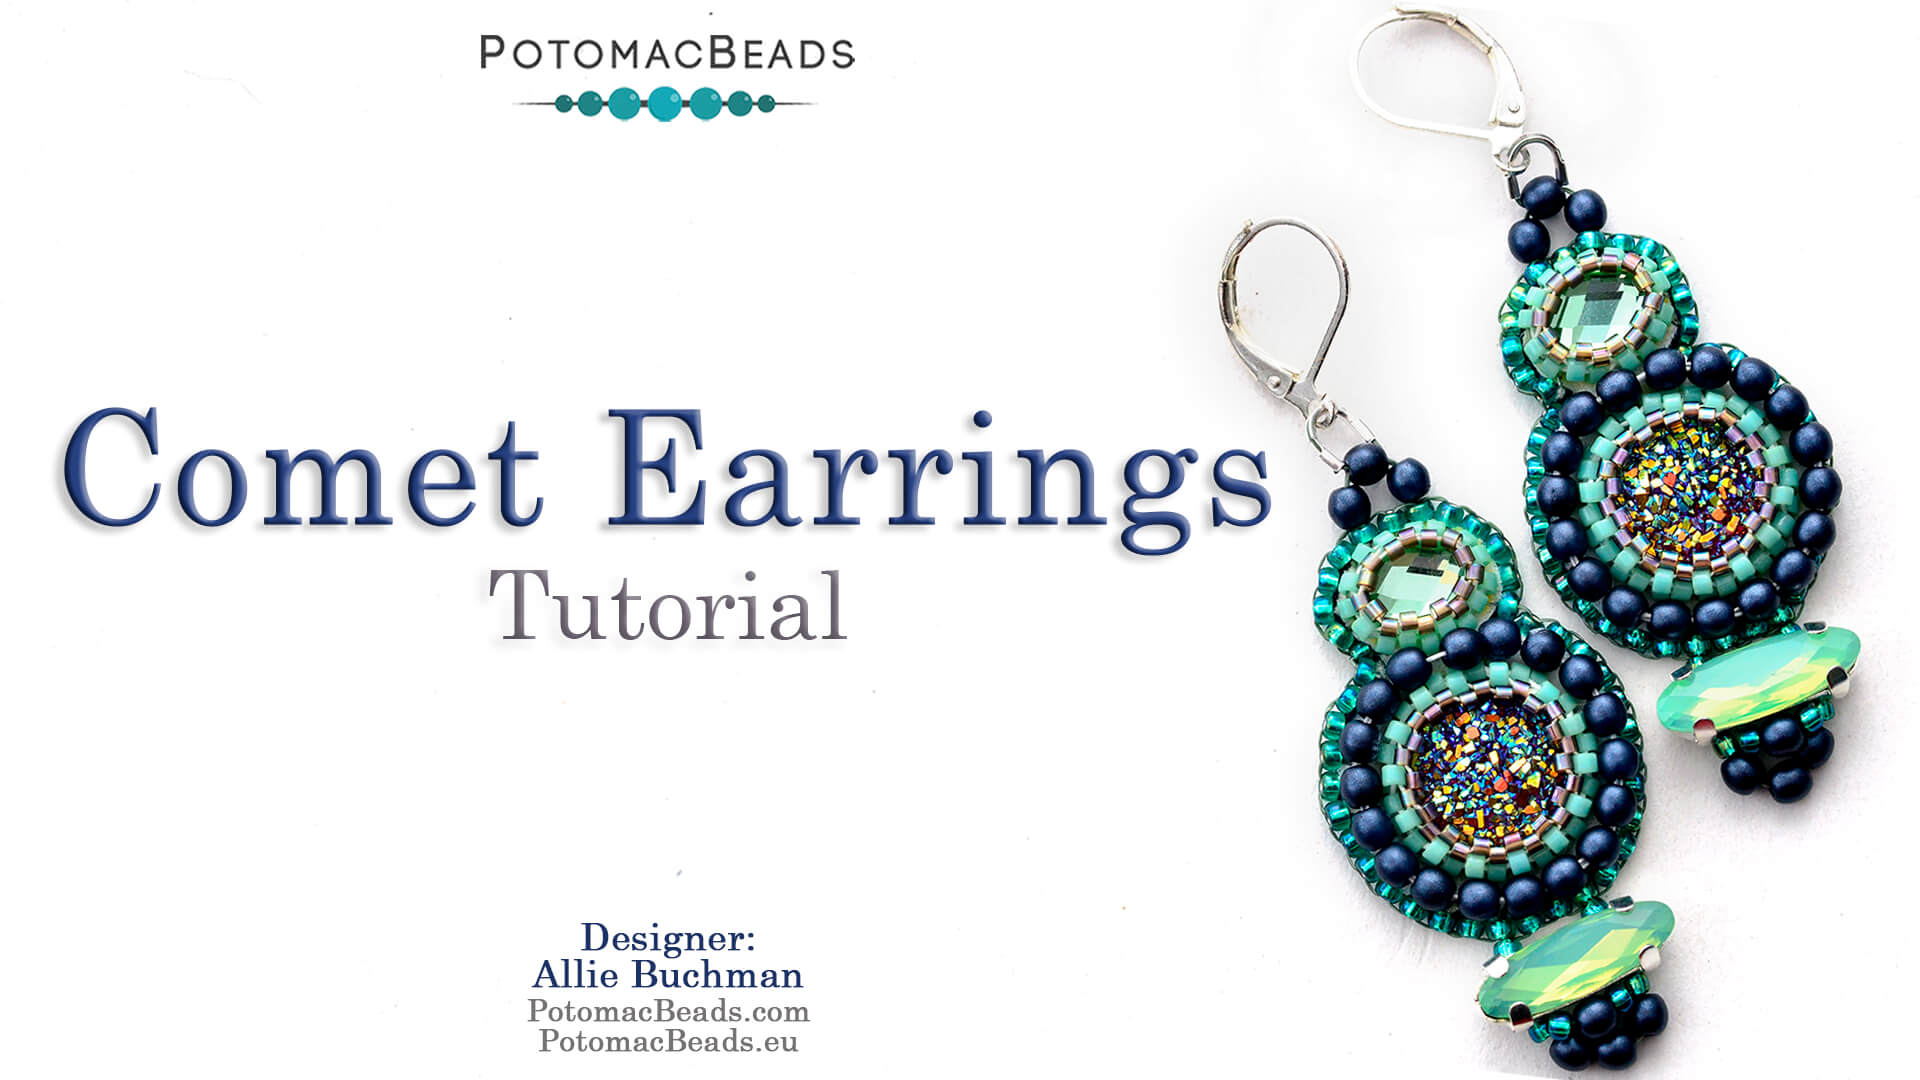 How to Bead Jewelry / Videos Sorted by Beads / Cabochon Videos / Comet Earrings Tutorial